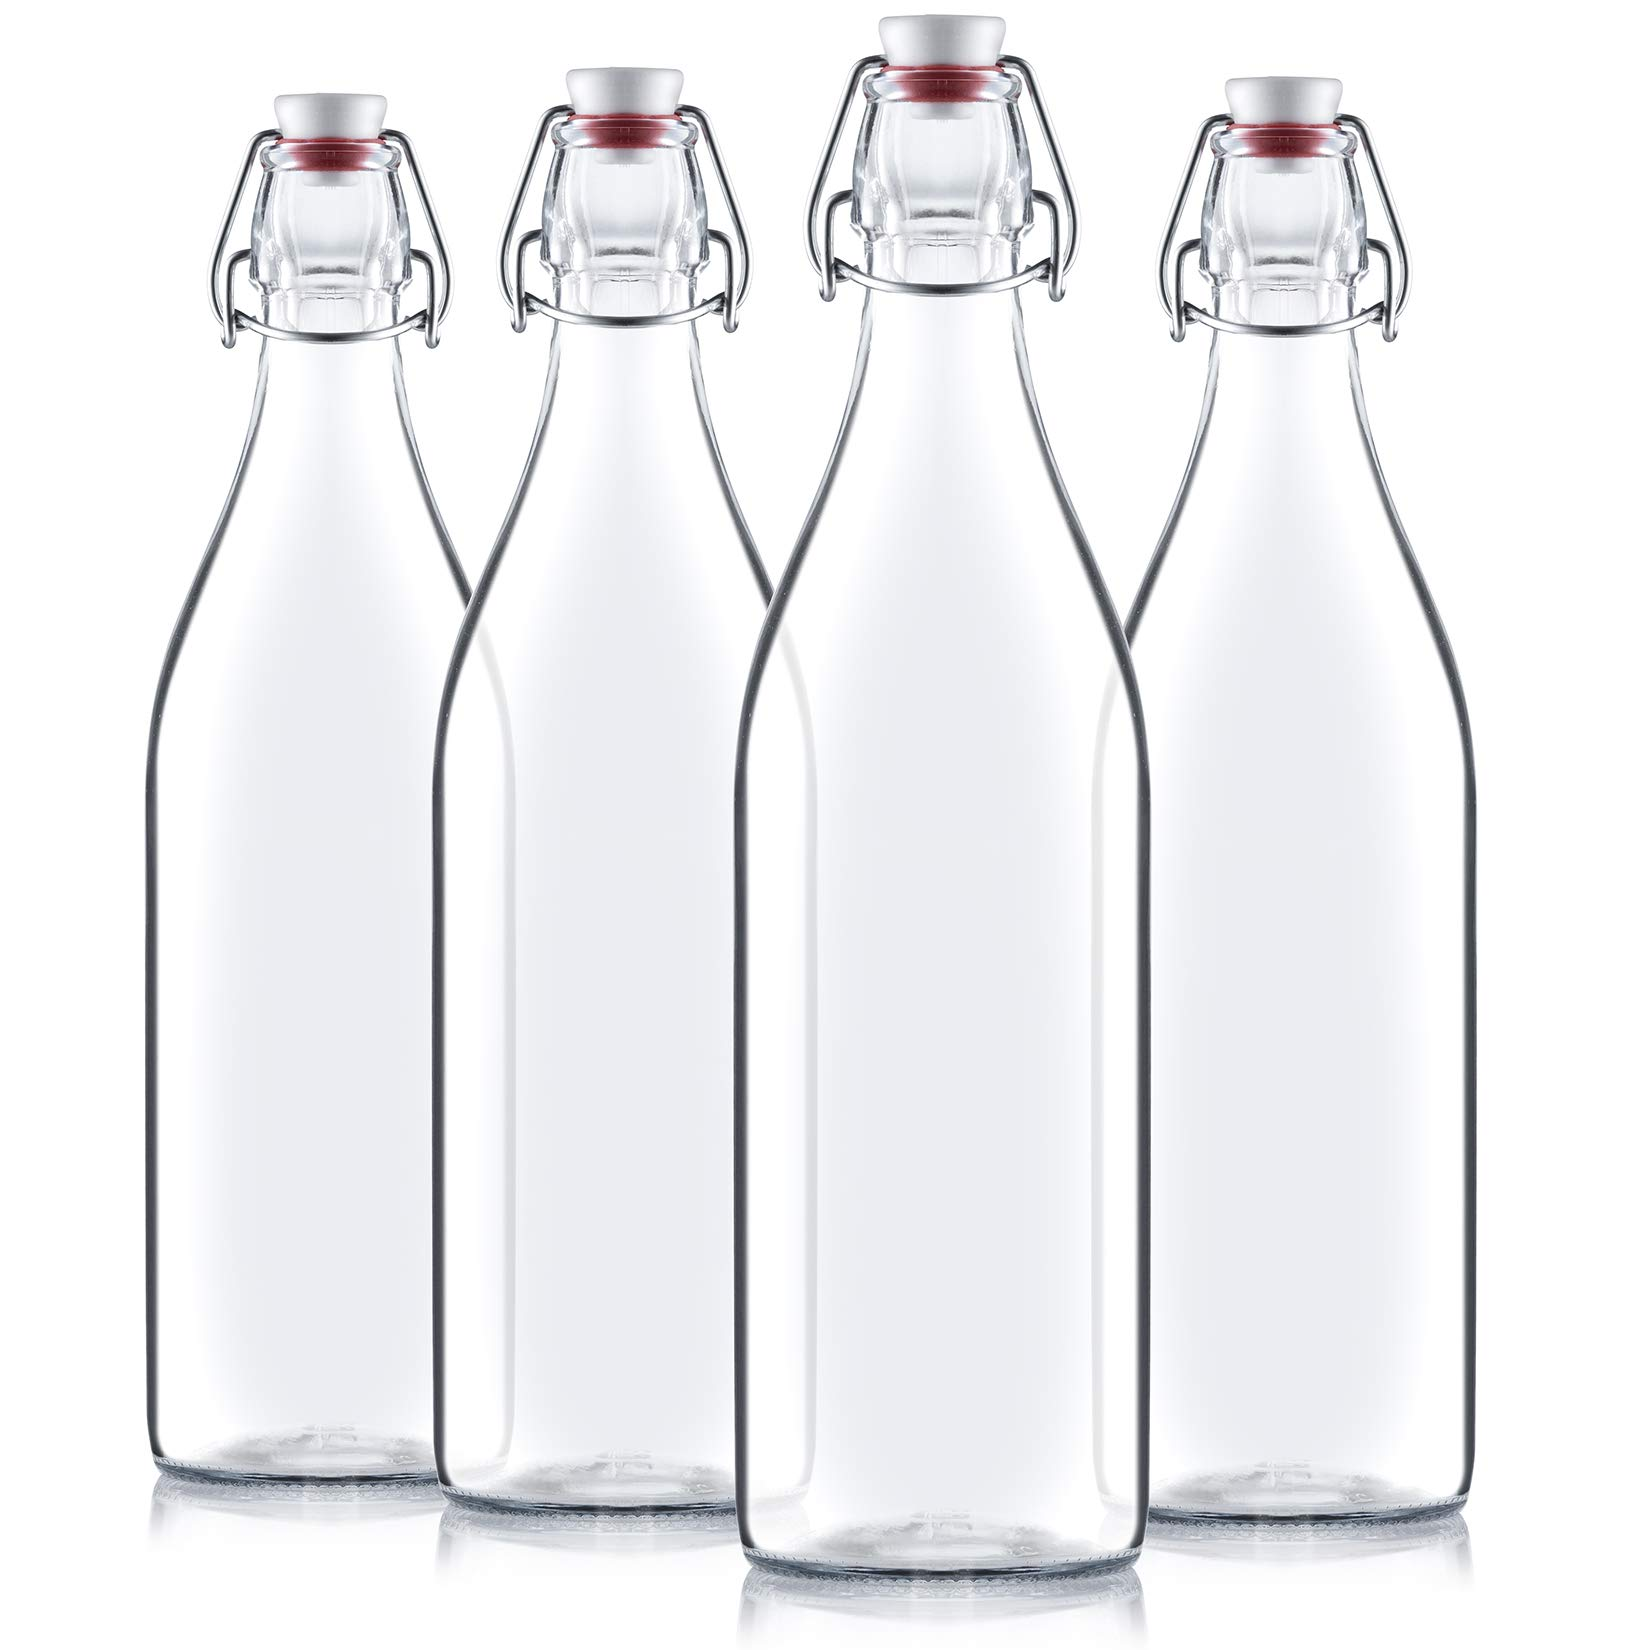 Bormioli Rocco Giara Clear Glass Bottle With Stopper [Set of 4] Swing Top Bottles Great for Beverages, Oil, Vinegar | 33 3/4 oz: Buy Online at Best Price in UAE - Amazon.ae